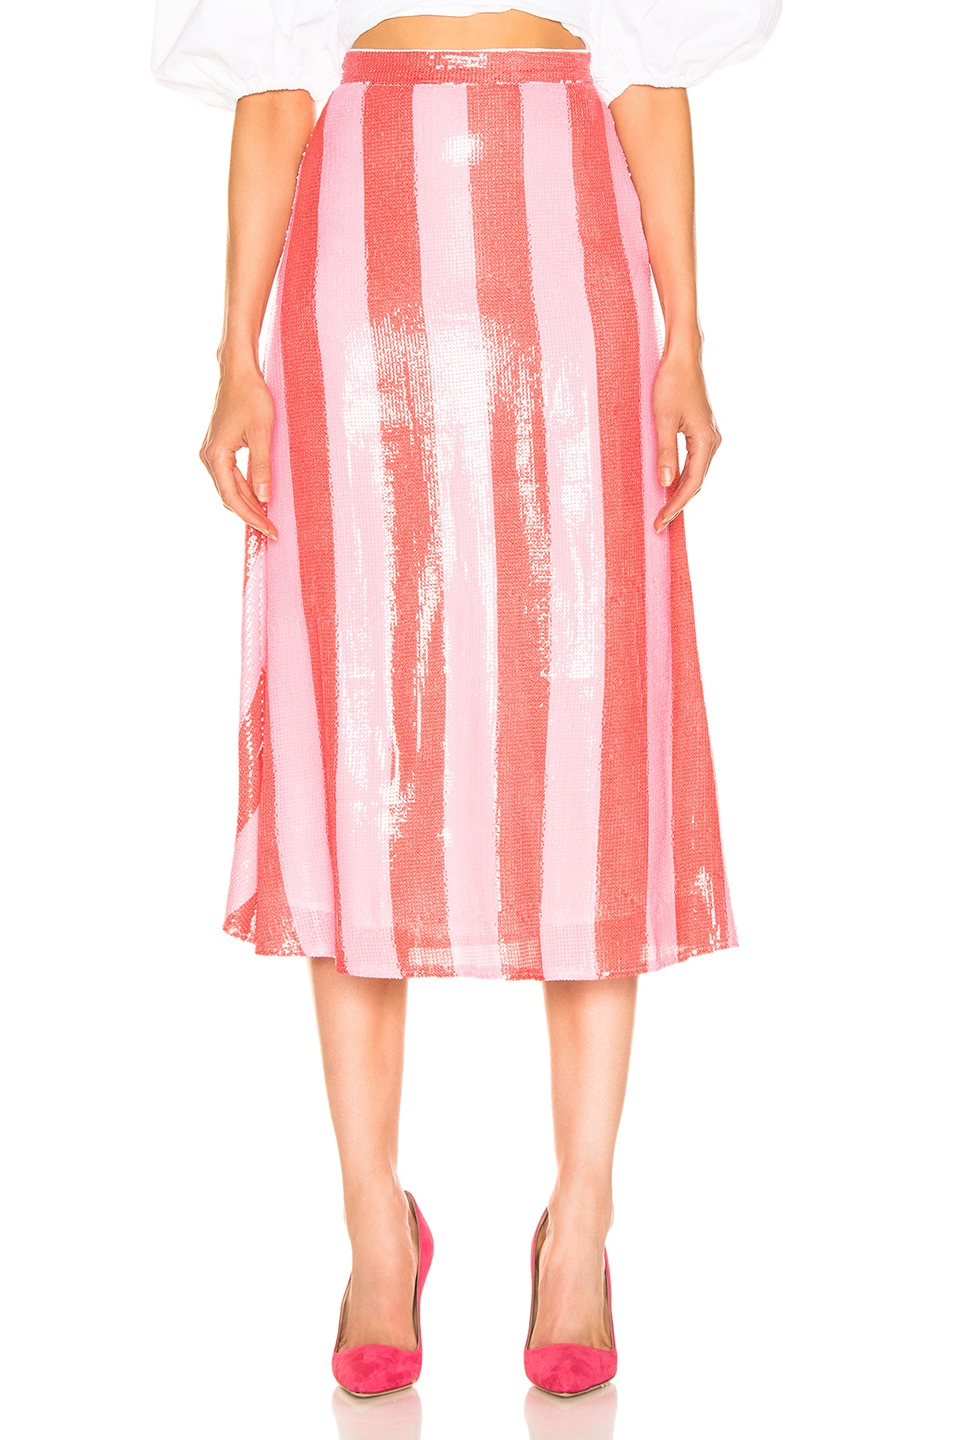 Image 1 of Olivia Rubin Penelope Skirt in Red & Pink